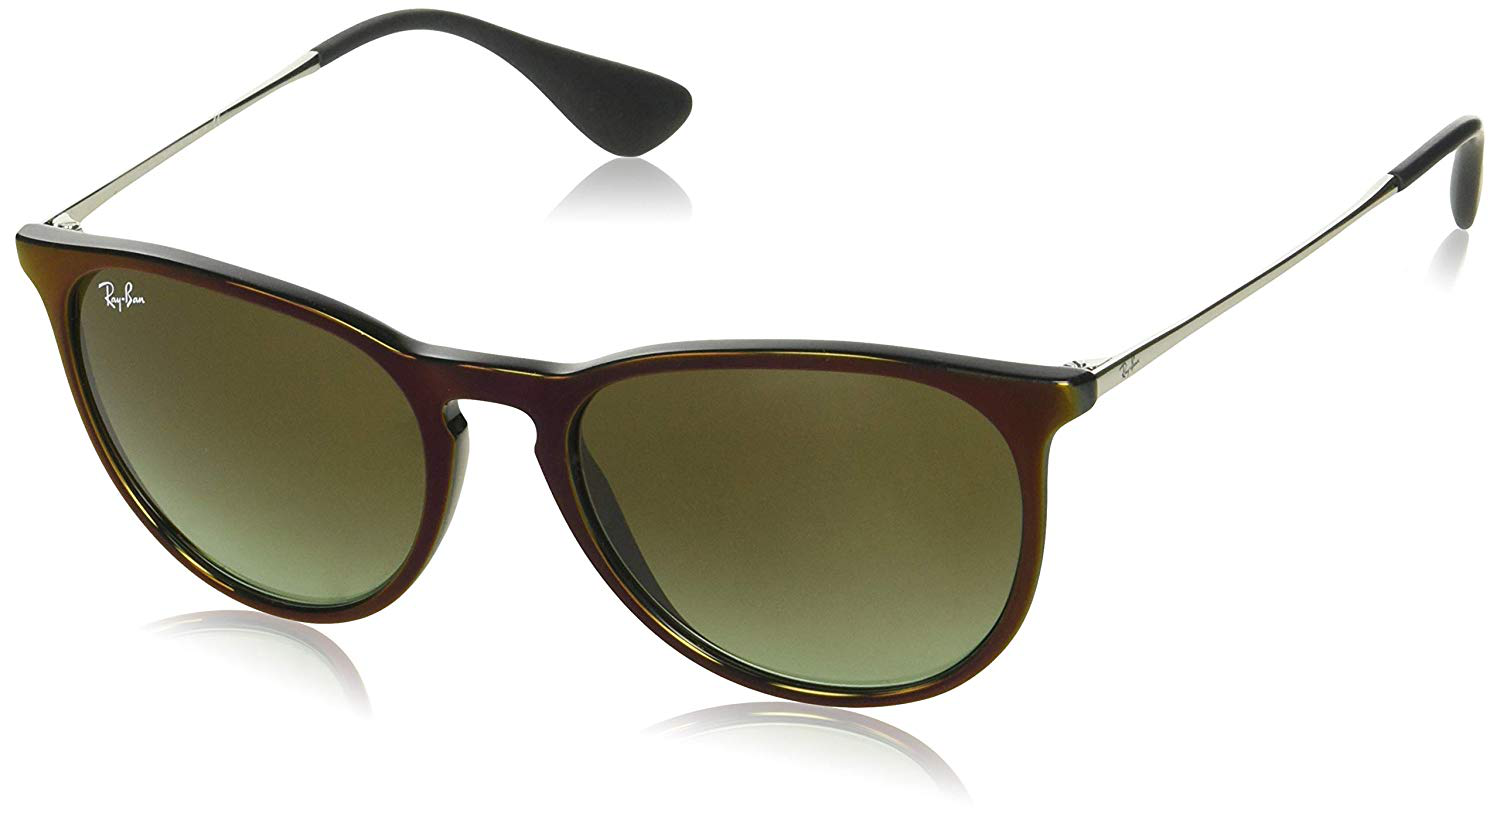 Ray-Ban - Sunglasses - RB4171 - Women - Black (Schwarz) - one size